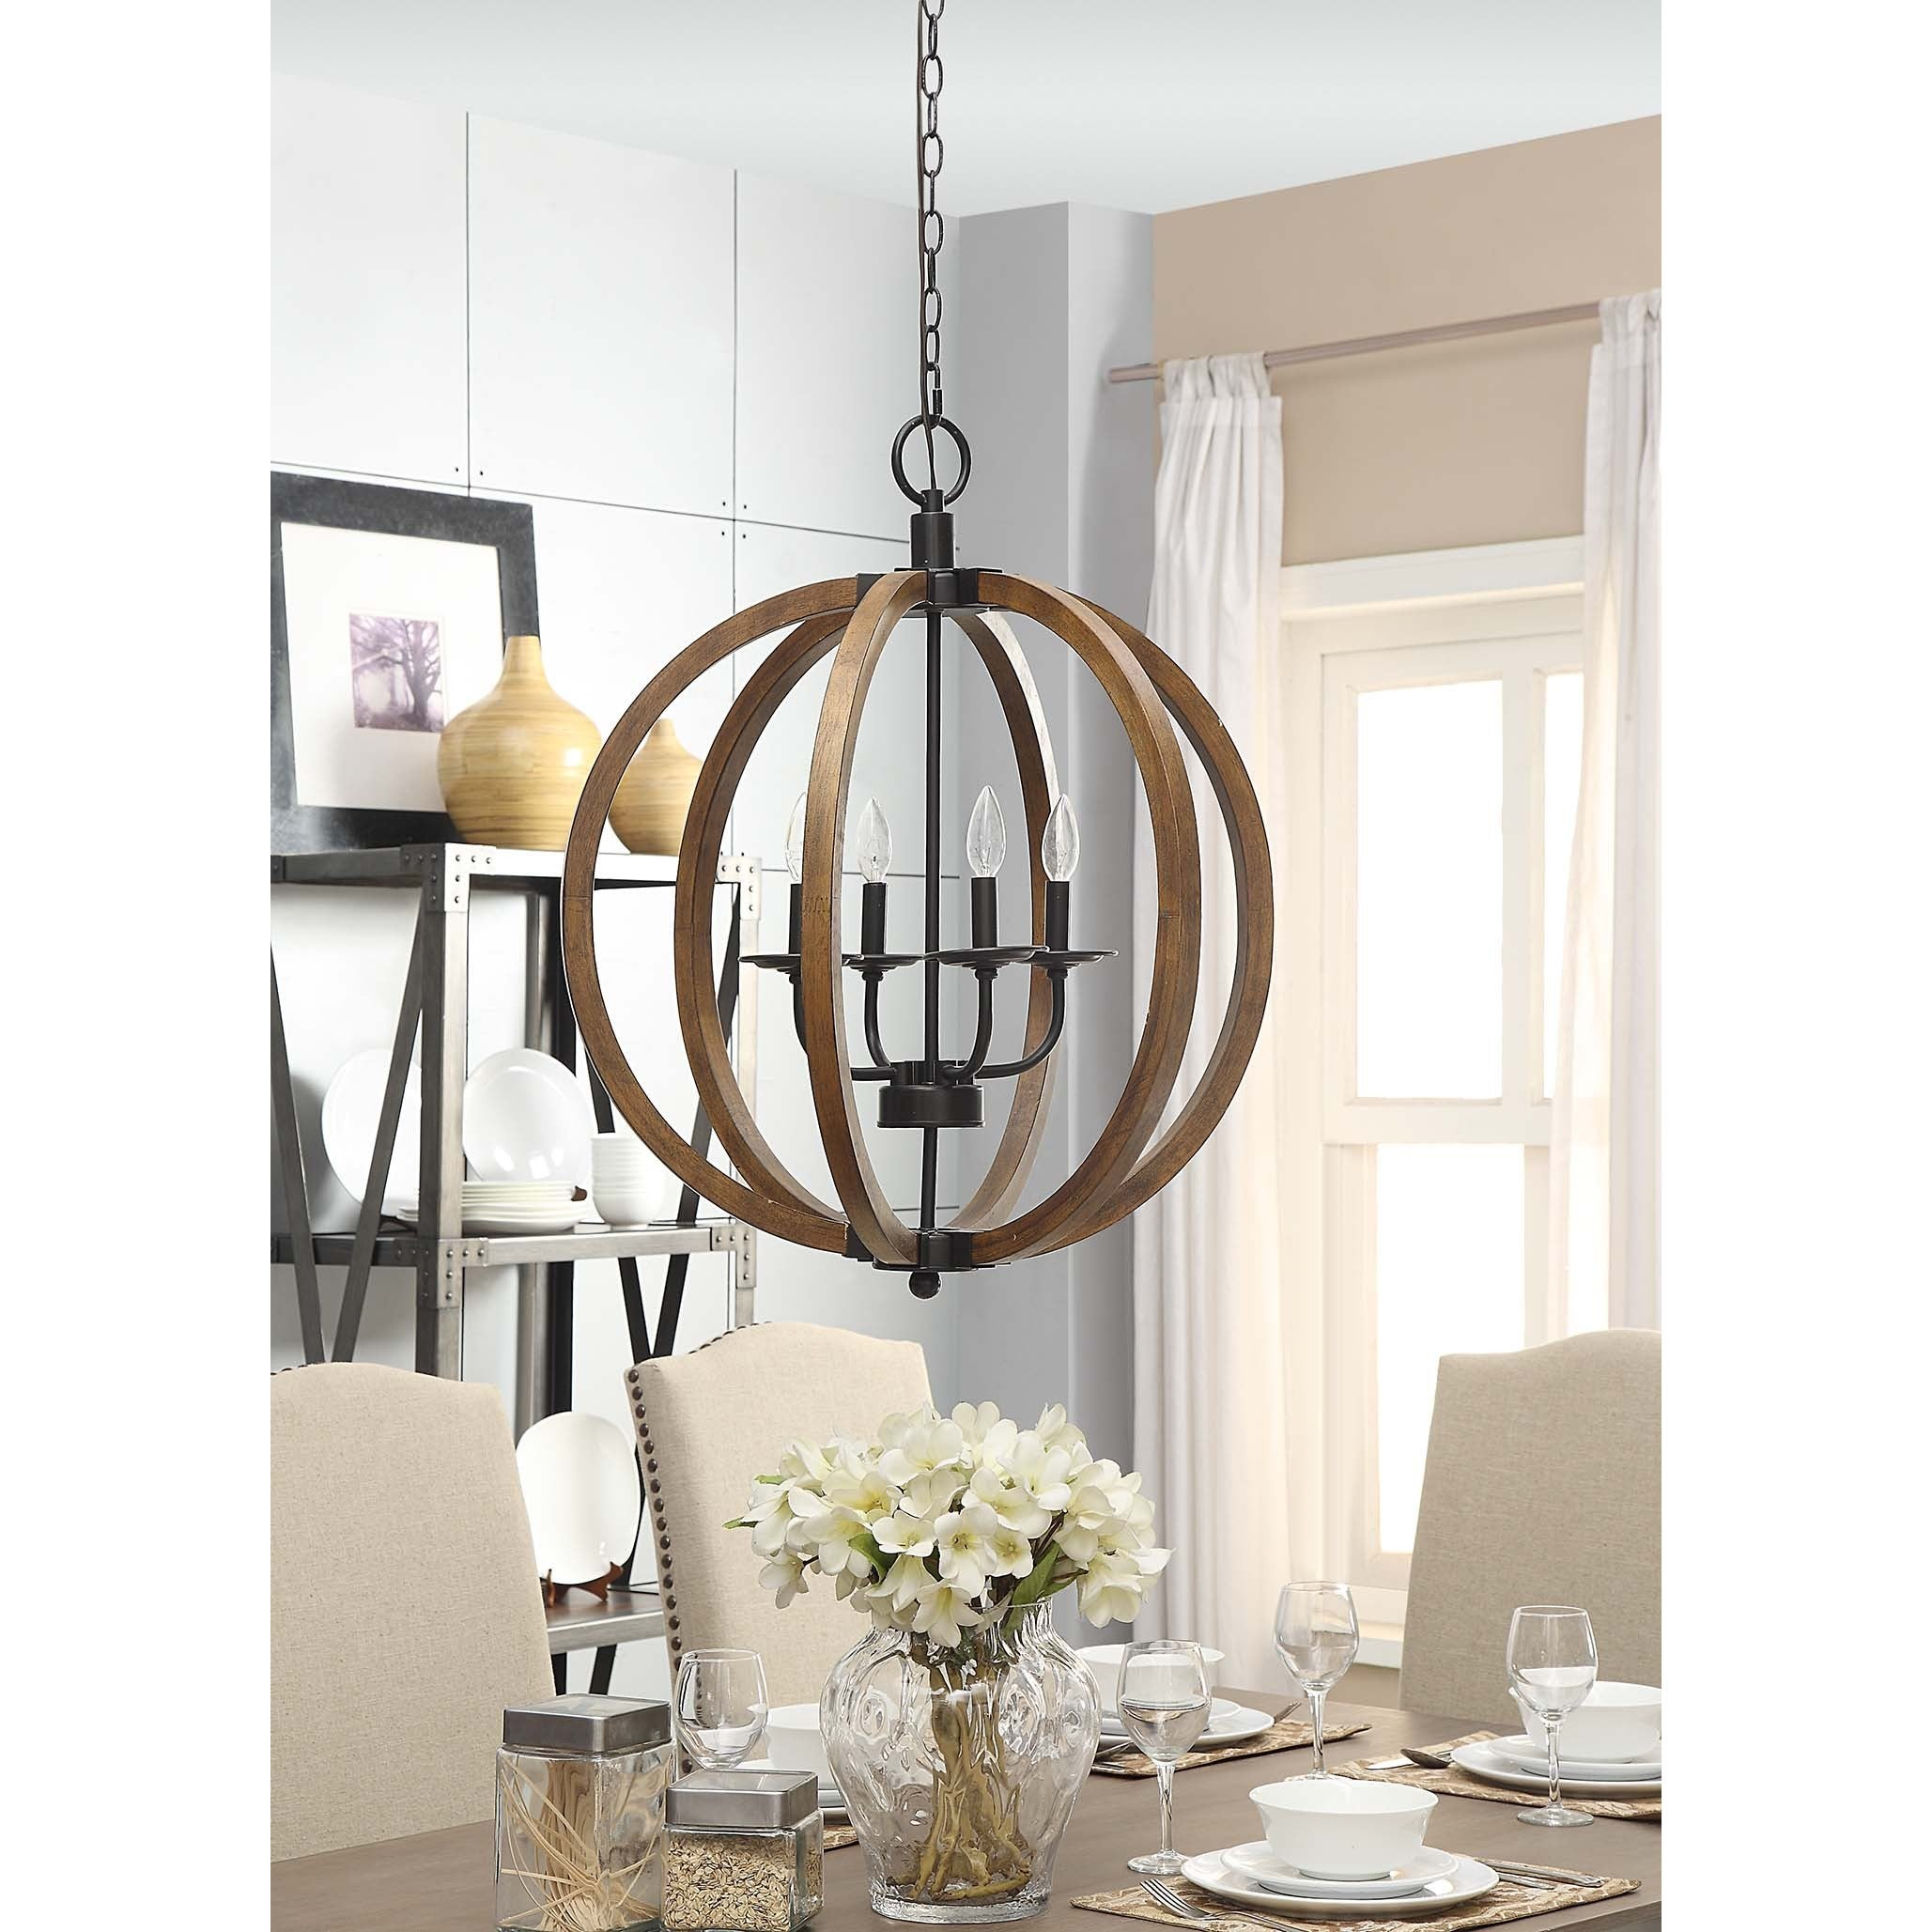 Vineyard Distressed Mahogany and Bronze 4 light Orb Chandelier